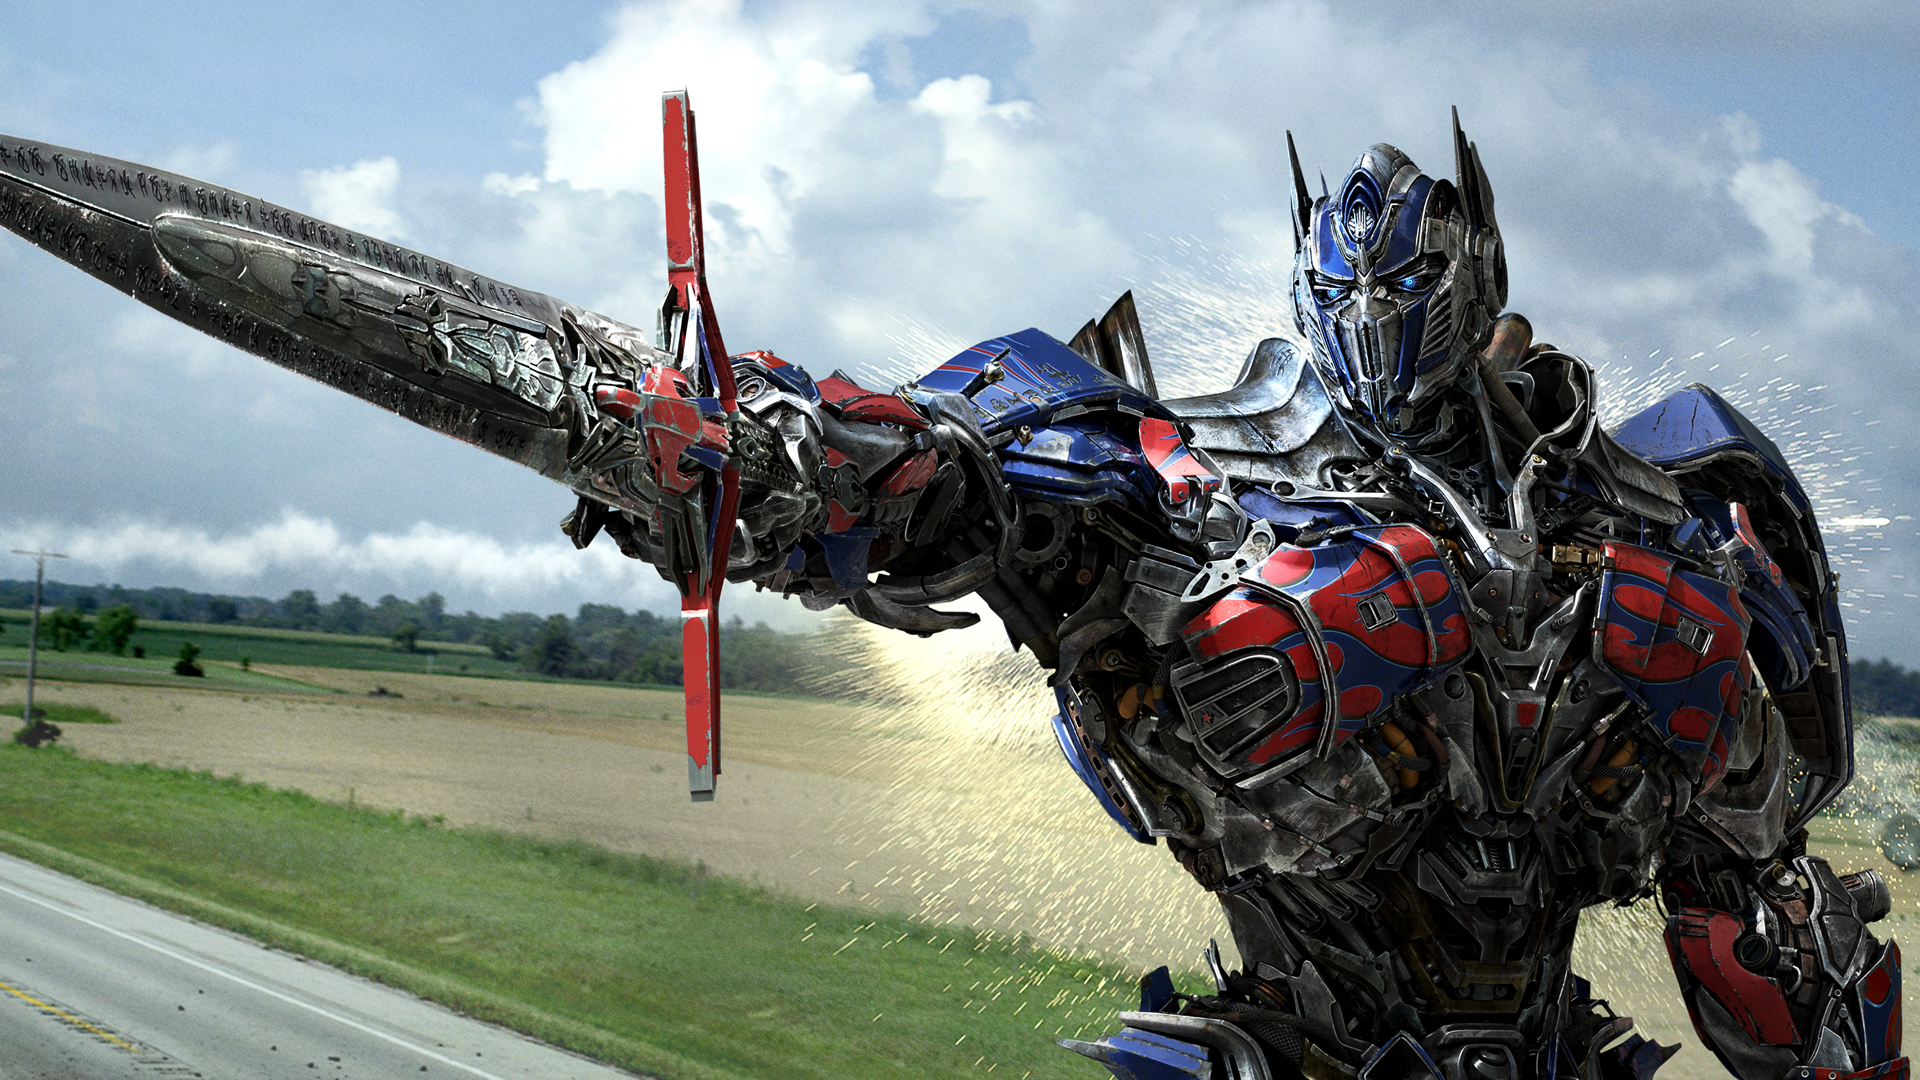 Optimus w/ Sword Transformers 4 Wallpaper HD